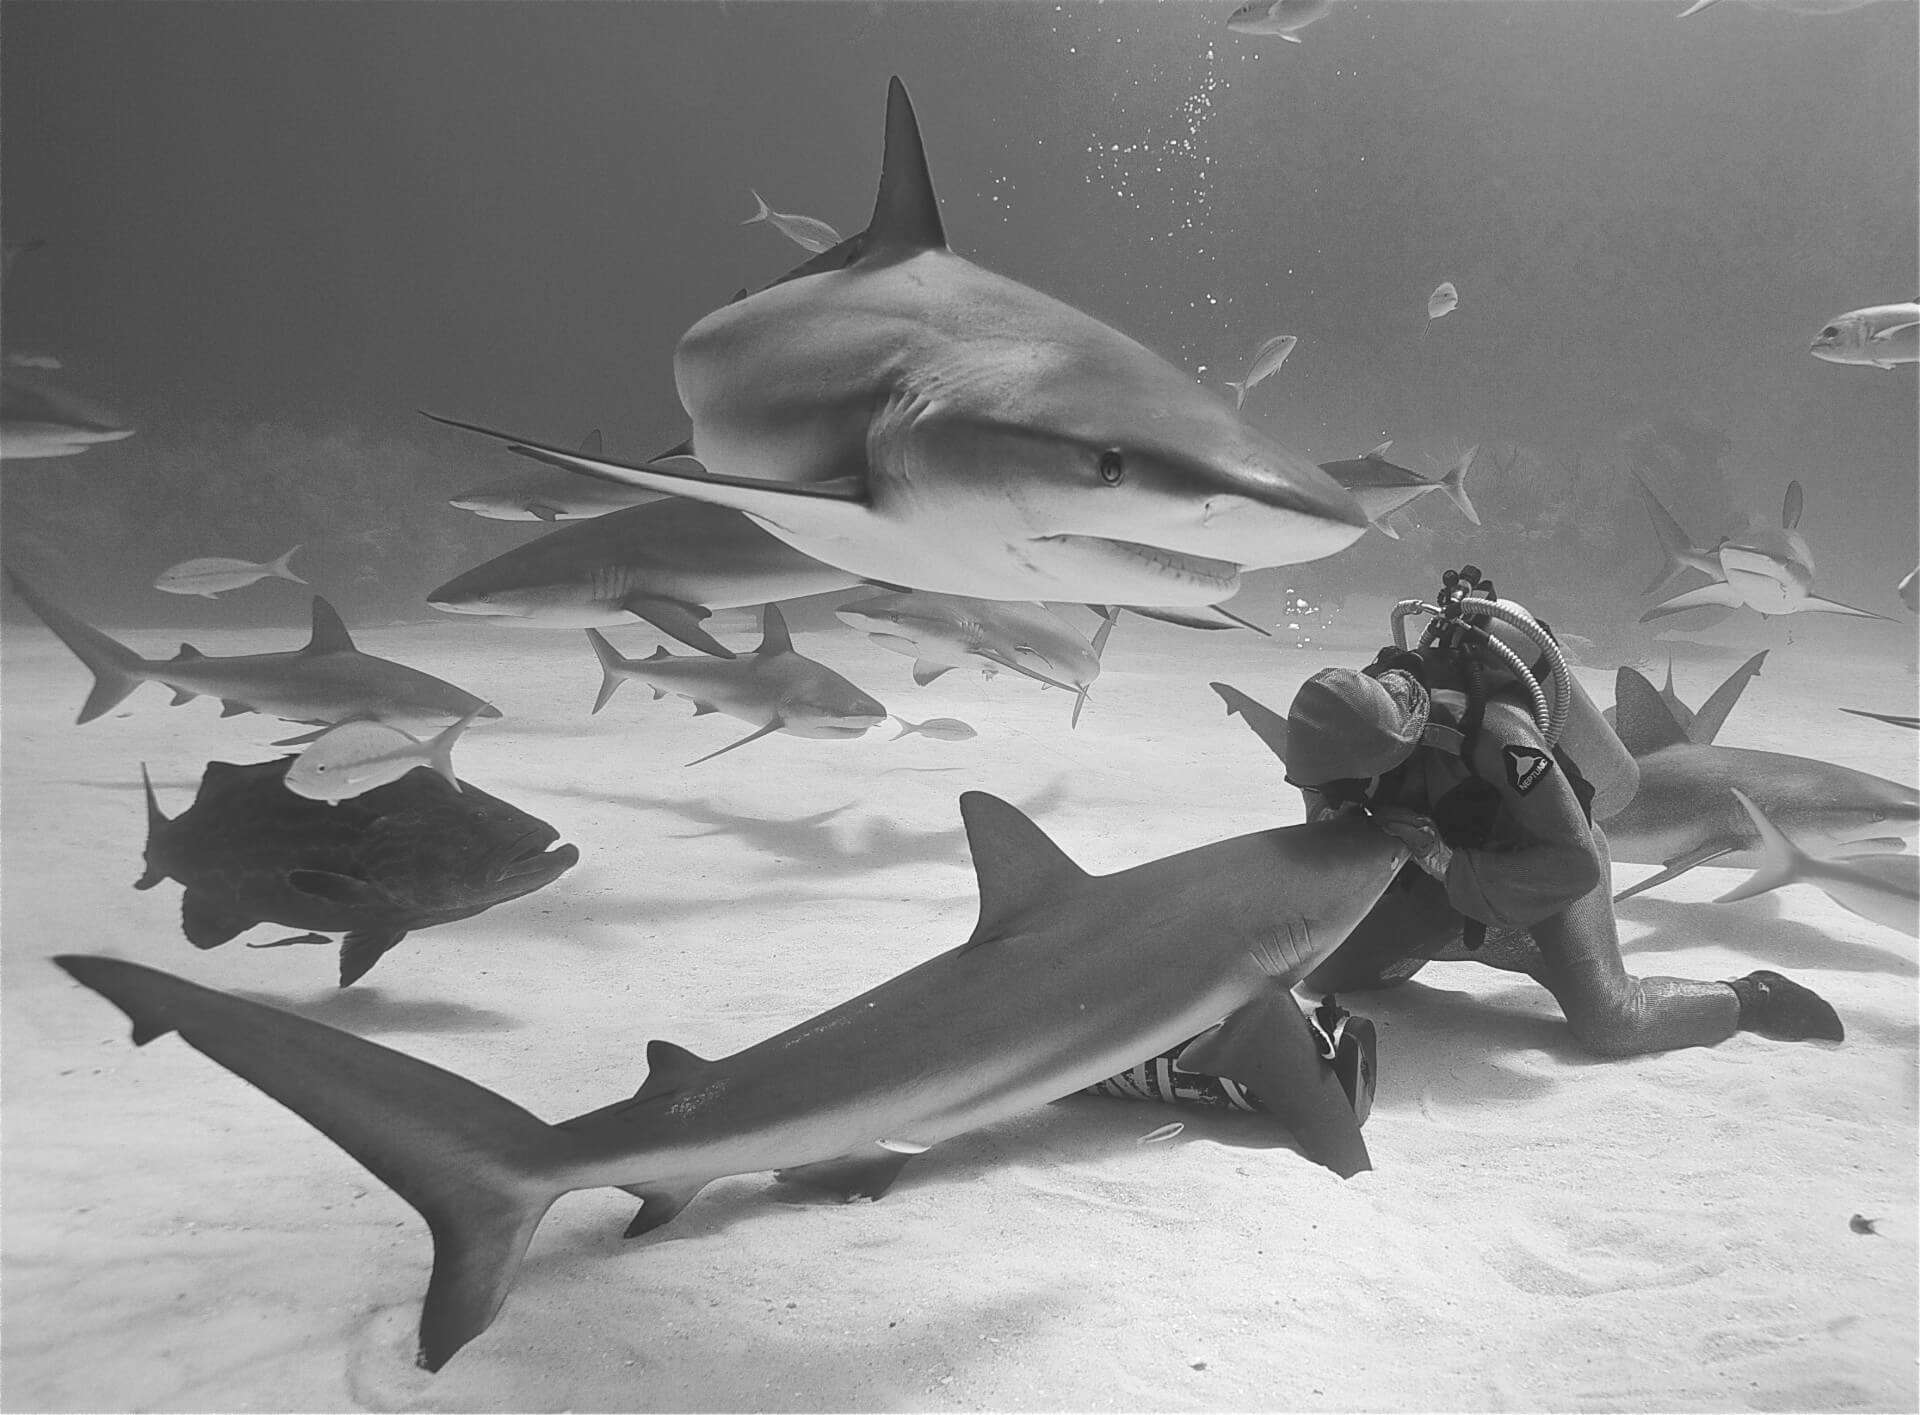 Cristina Zenato—Fierce Female Shark Professional and Ocean Entrepreneur 5